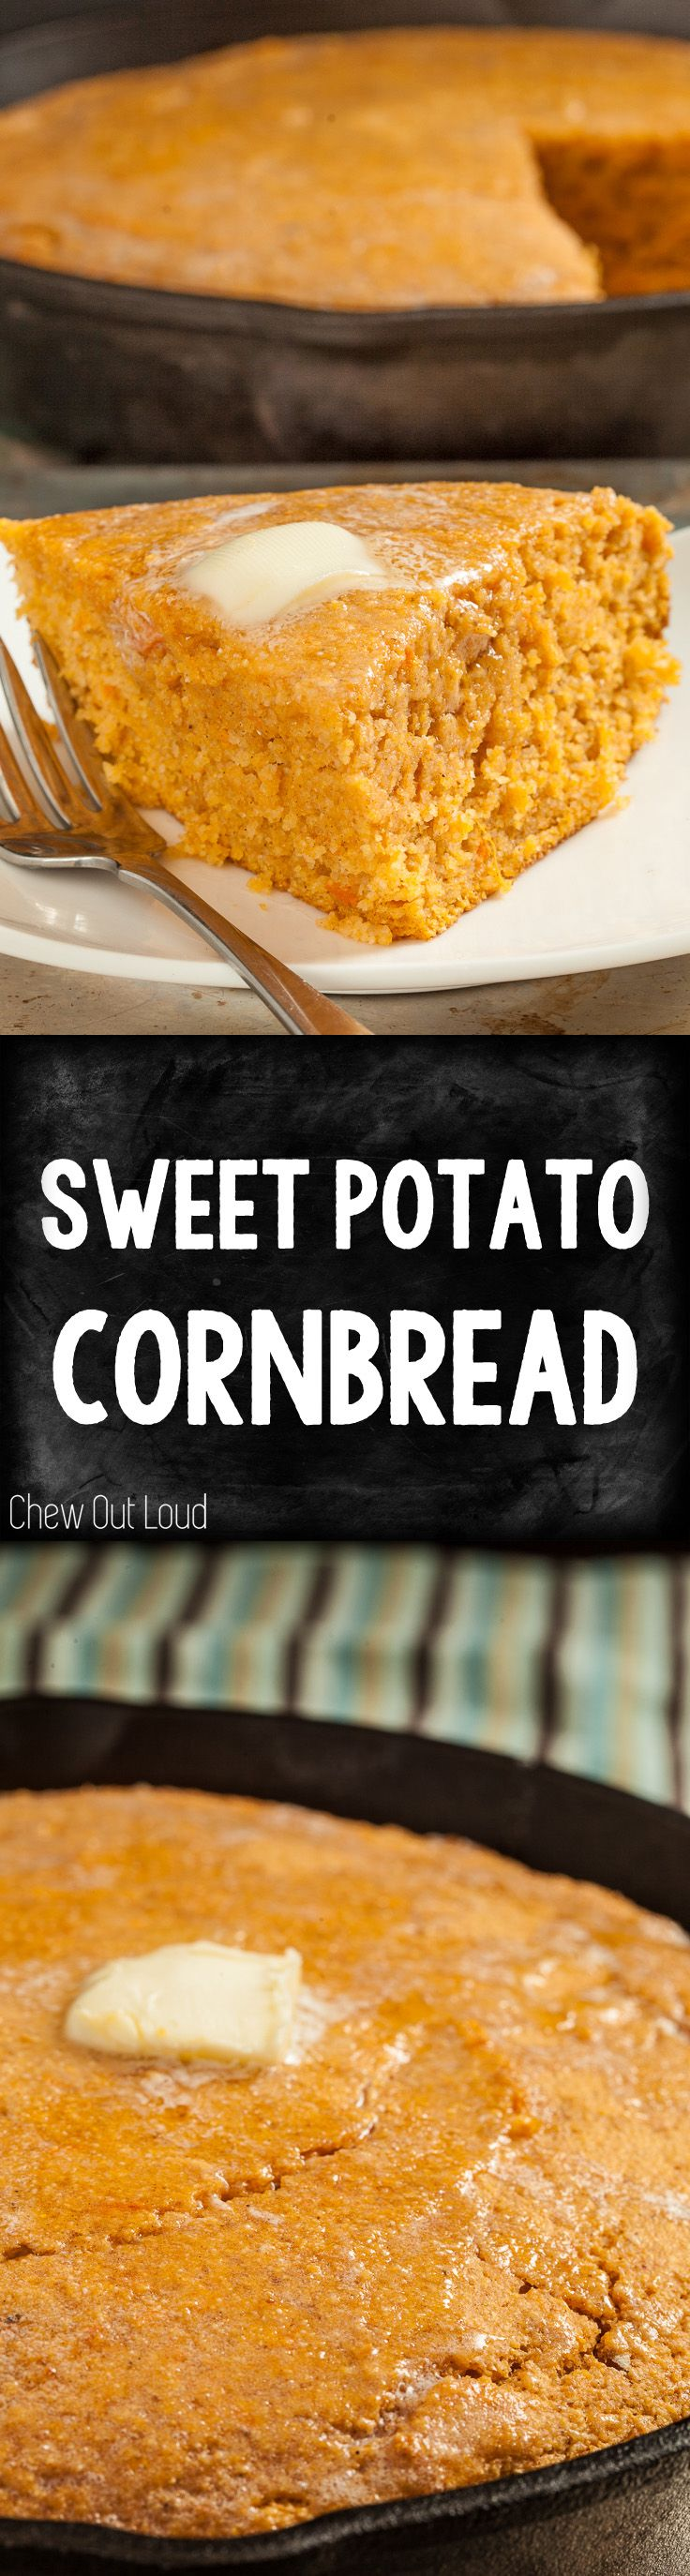 Sweet Potato Cornbread is holiday perfect! Plus an extra dose of nutrition. So moist 'n delish. #holiday #fall #side